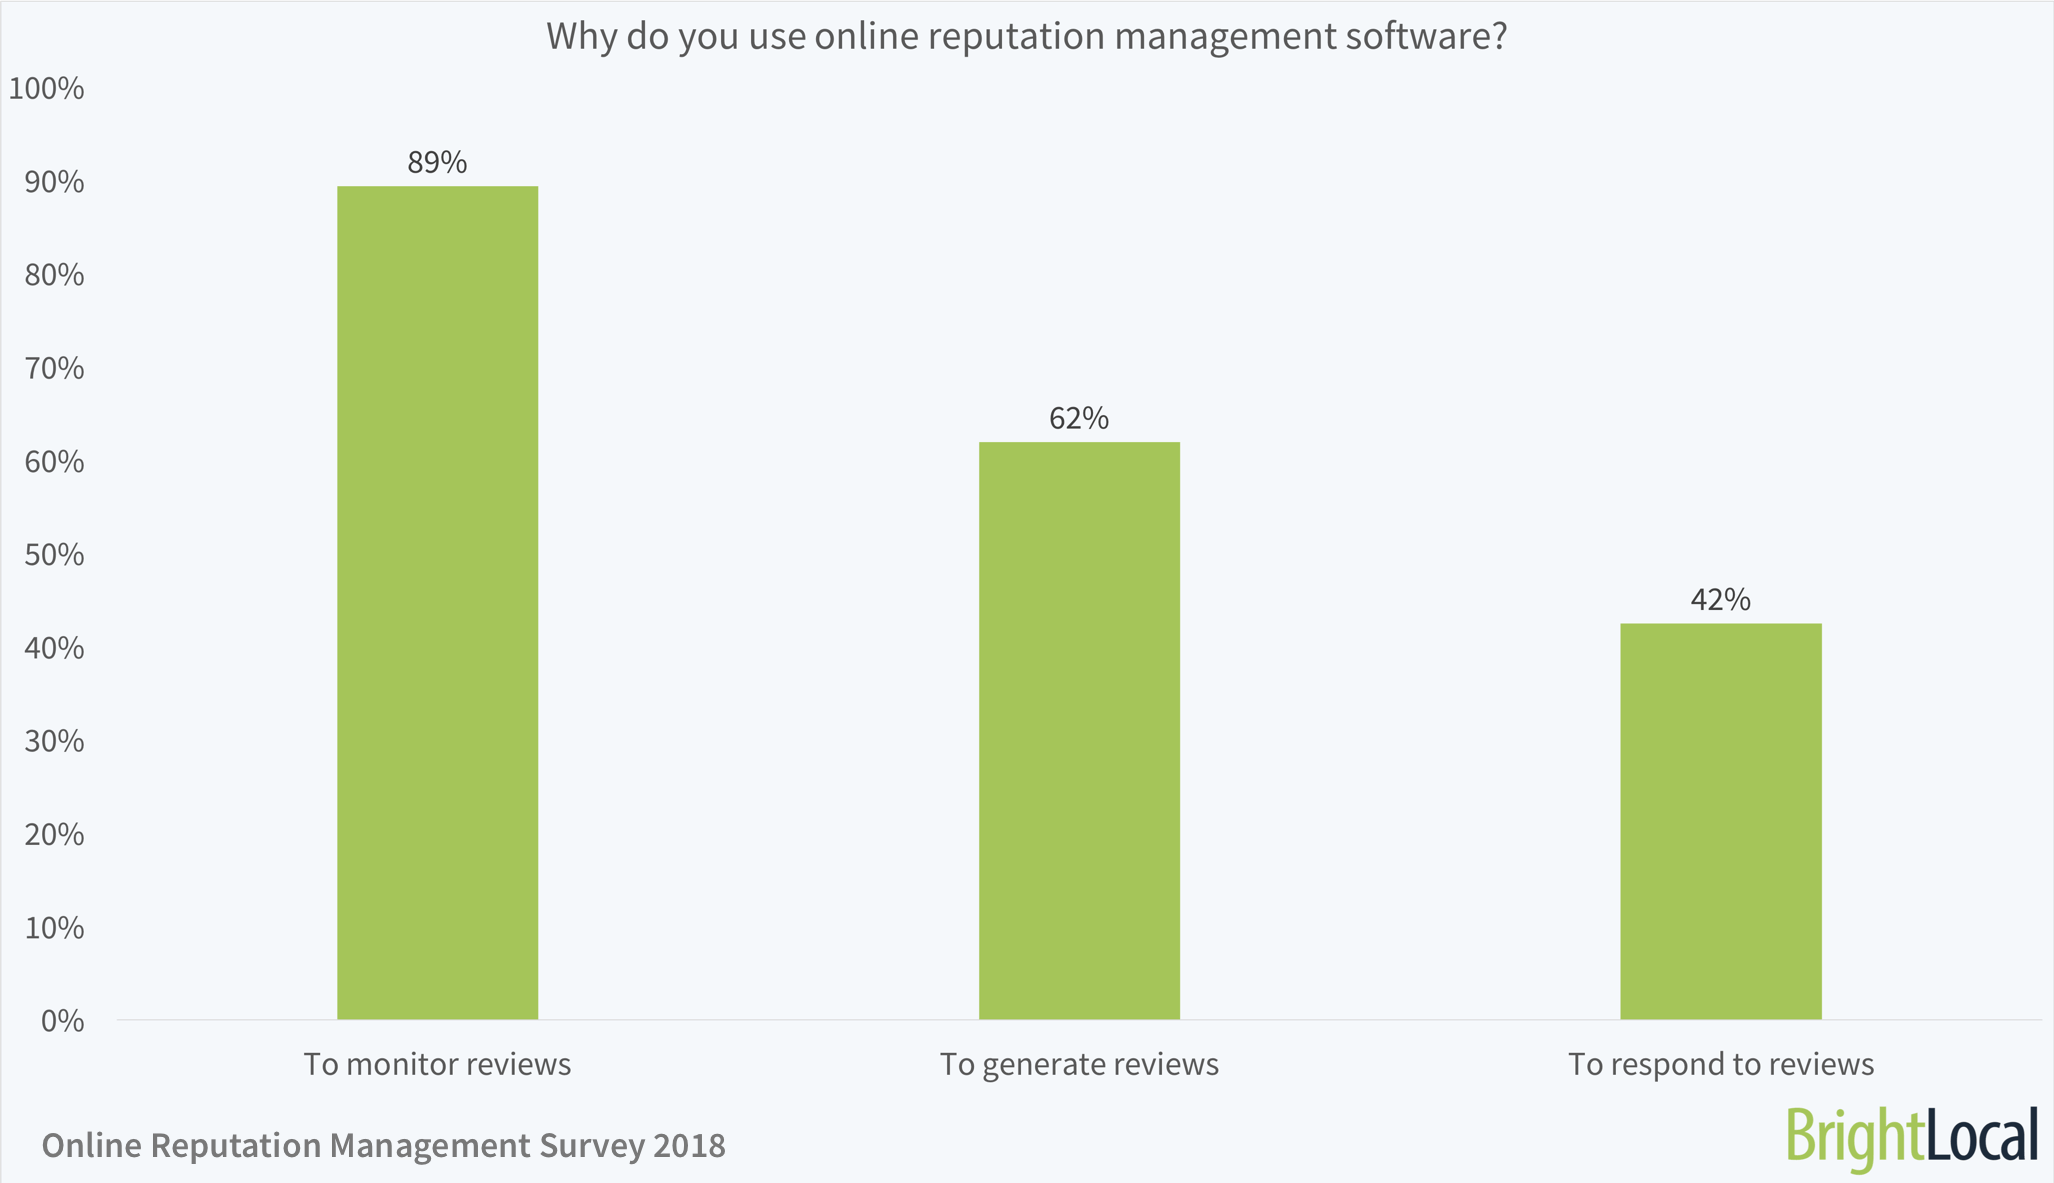 Why do you use online reputation management software?